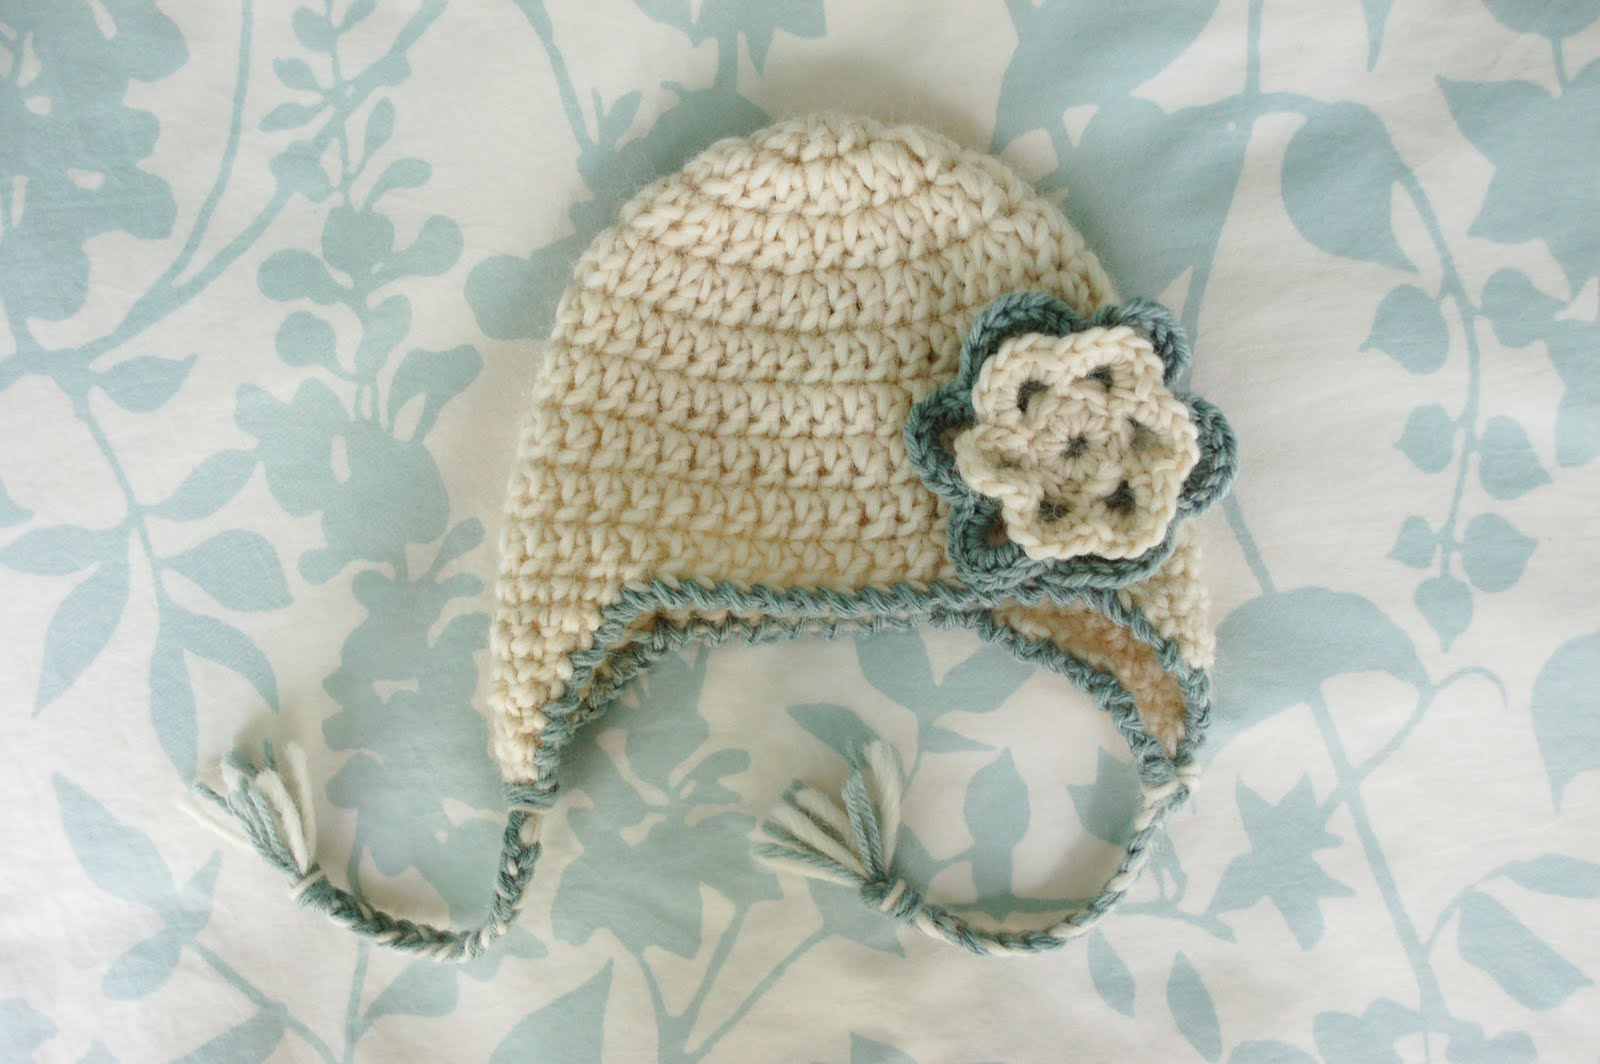 Crochet Pattern Hat Baby : Alli Crafts: Free Pattern: Baby Earflap Hat - Newborn